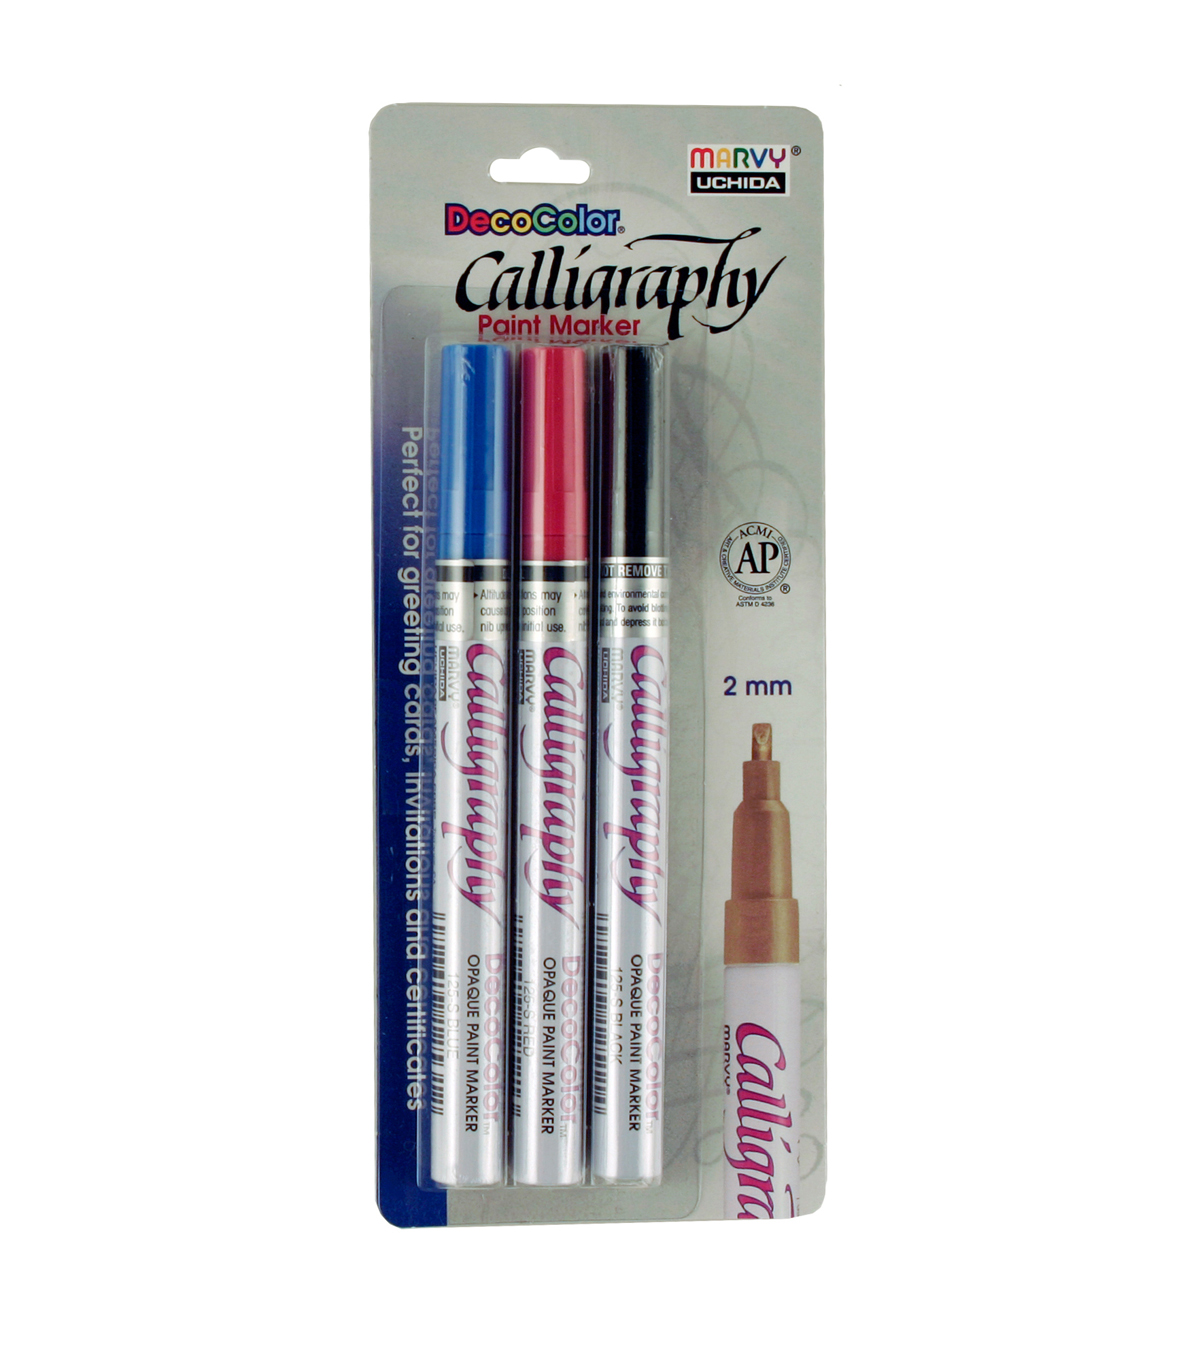 Decocolor® Calligraphy Three Piece Paint Marker Set of 3